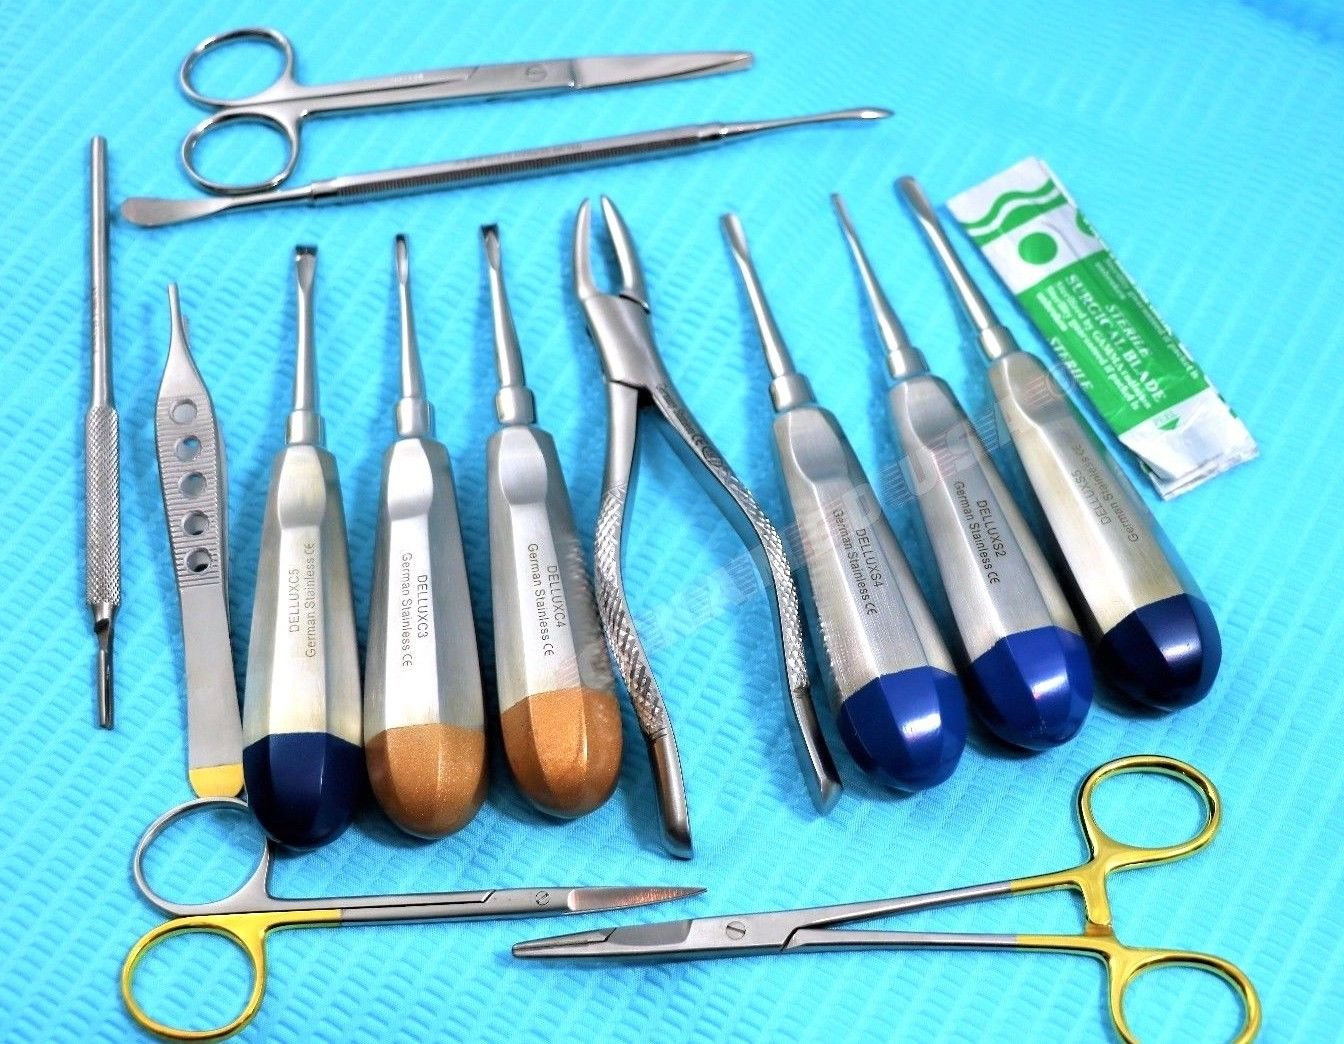 PREMIUM GERMAN SET OF 23 Veterinary Dental Extraction Instruments Kit Forceps-A+ QUALITY